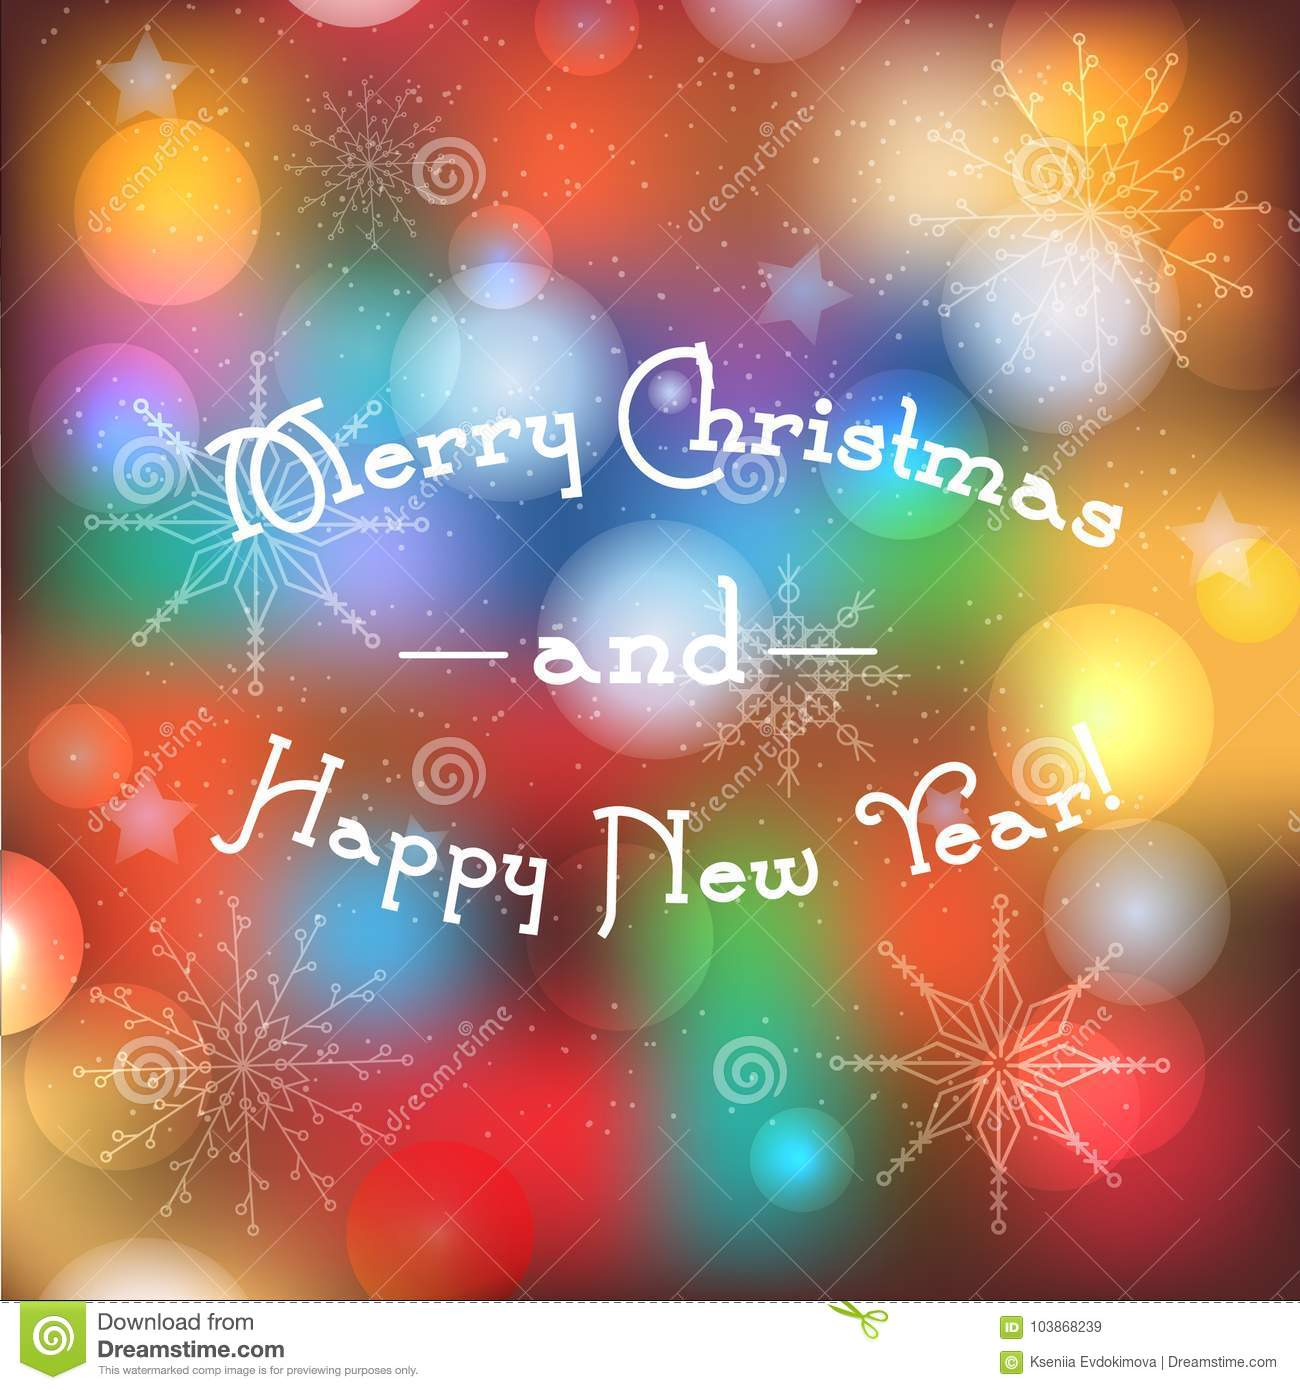 Blurred winter holidays background with Merry Christmas and Happy New Year text. Greeting banner with magic lights and traditional